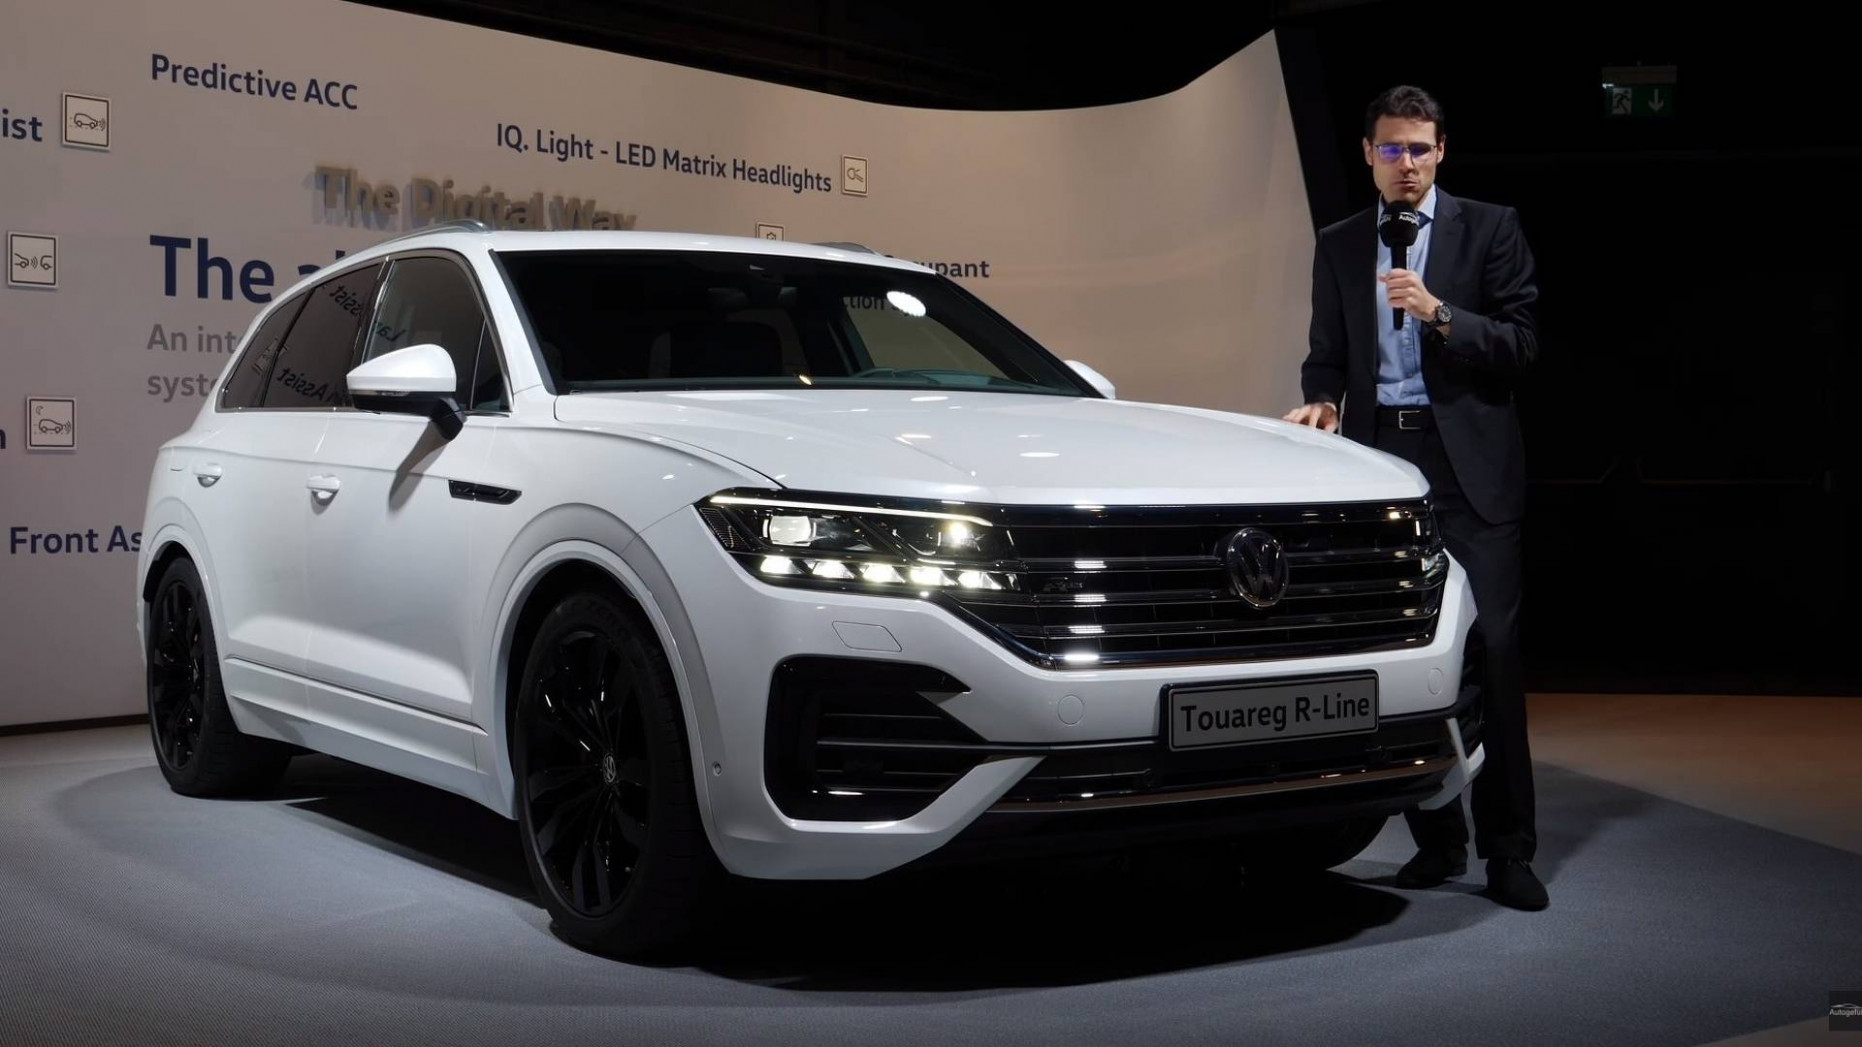 Rumors 2022 Vw Touareg Tdi